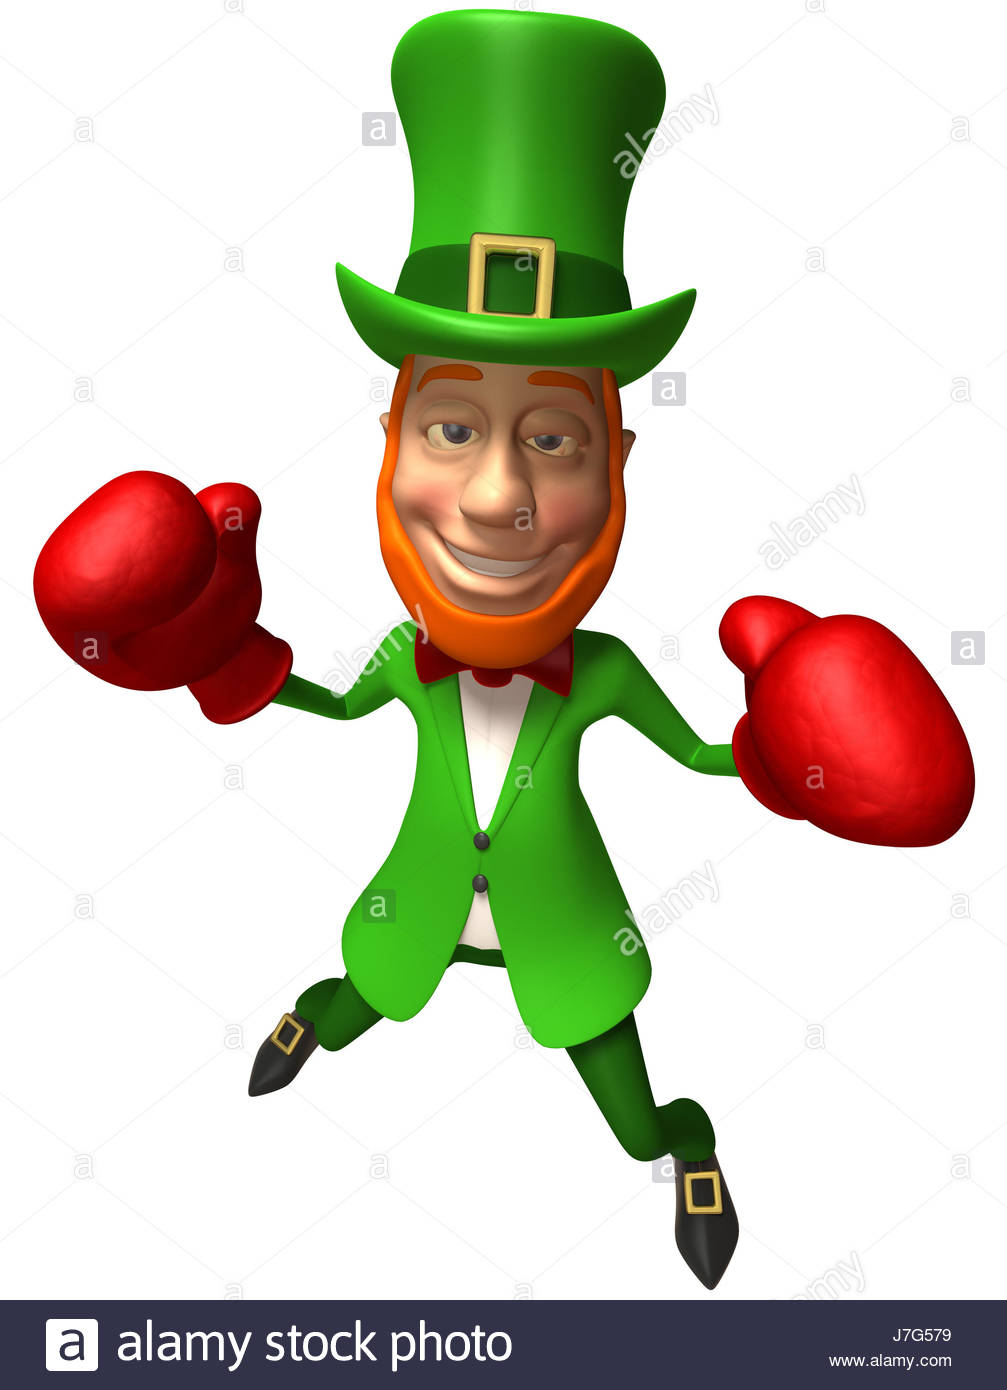 1007x1390 Ireland Irish Cartoon Goblin Leprechaun Green Guy Hat Illustration